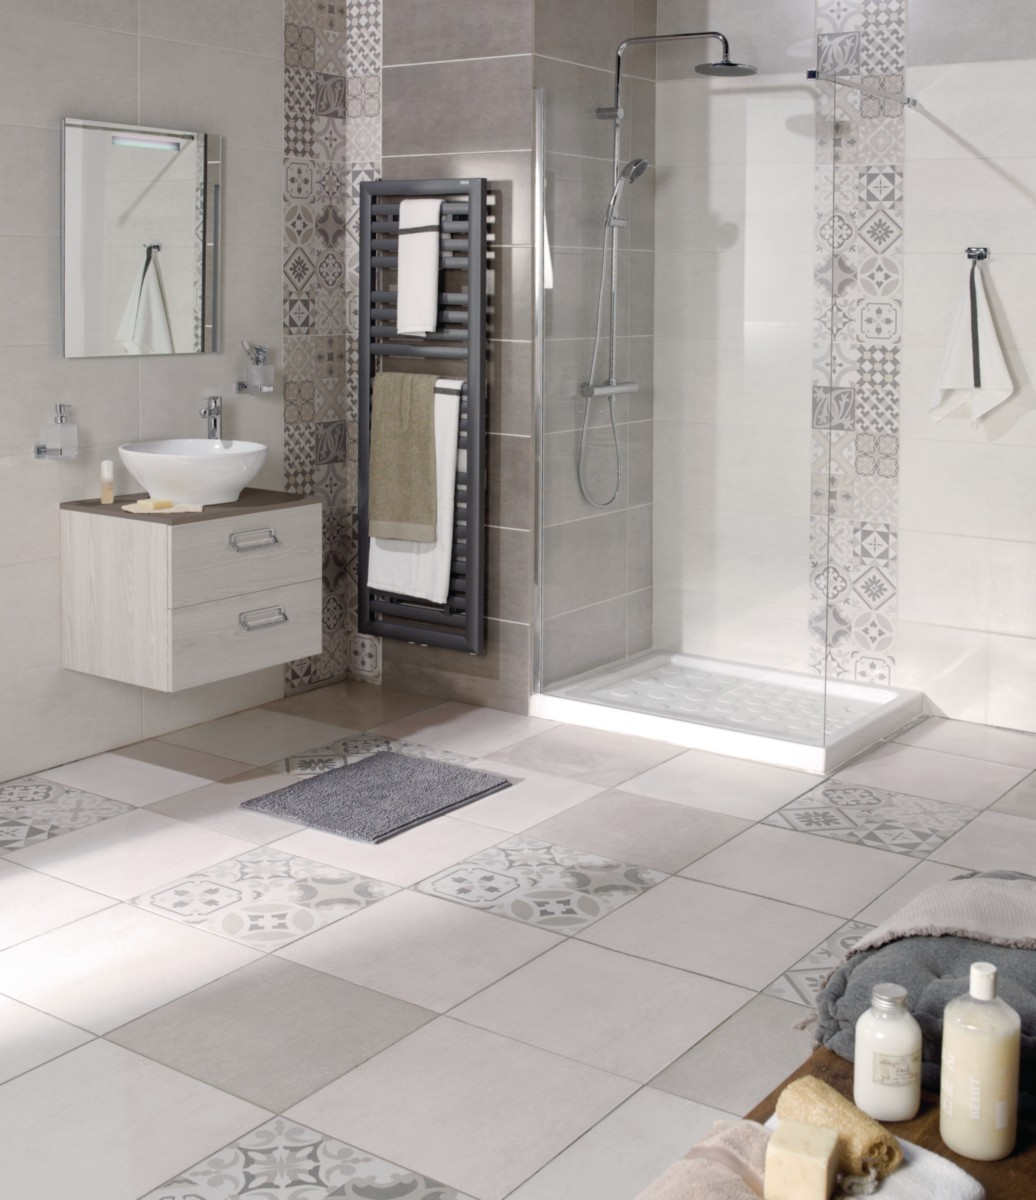 Carrelage sol salle de bain point p id e for Carrelage sol salle bain